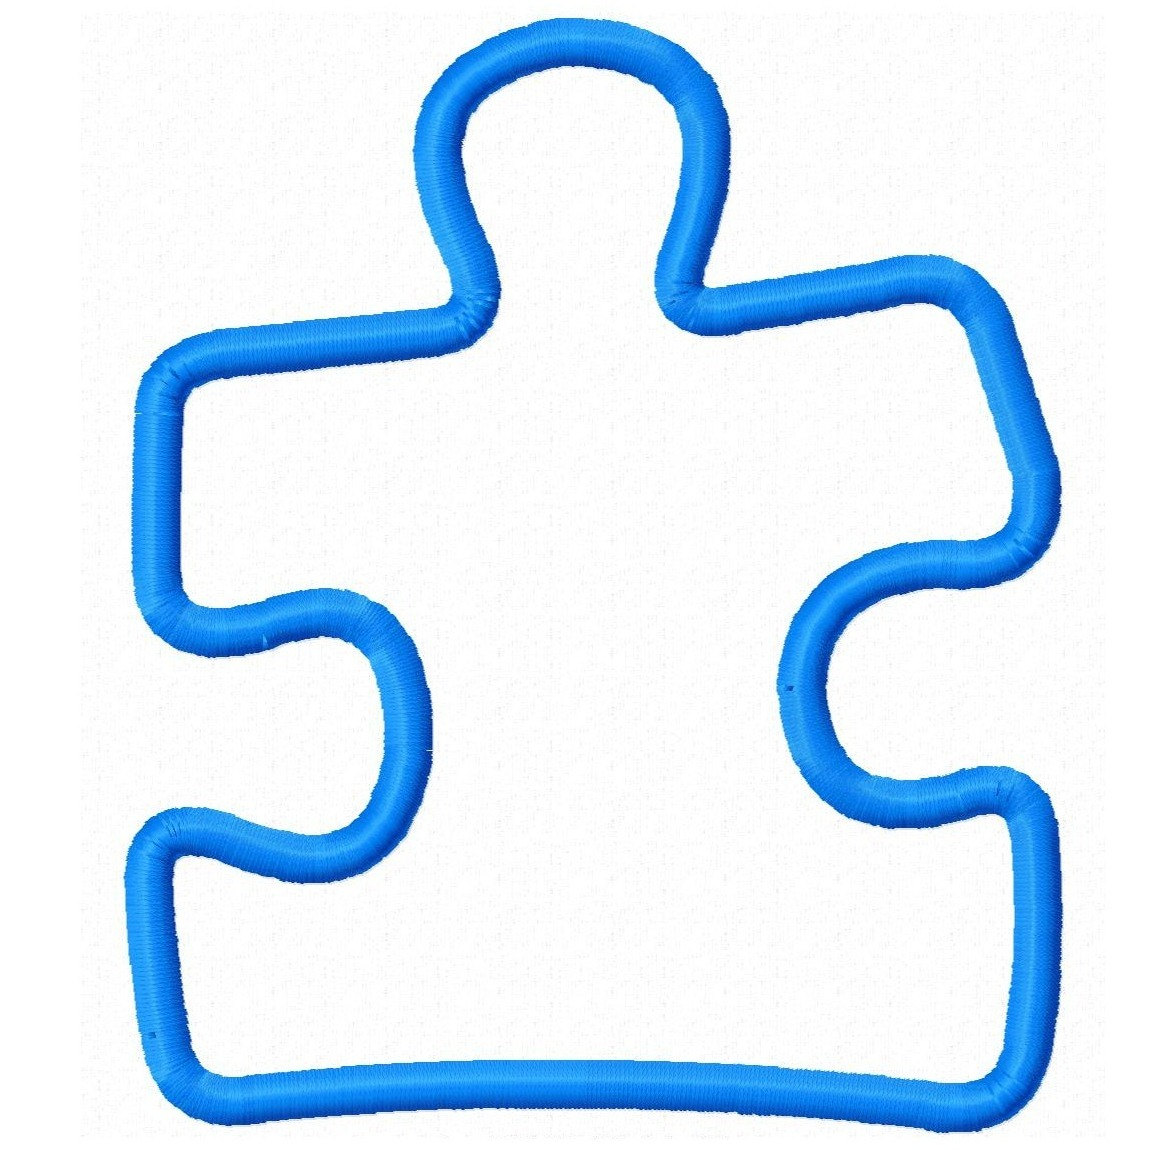 39 Puzzle Piece Image Free Cliparts That You Can Download To You